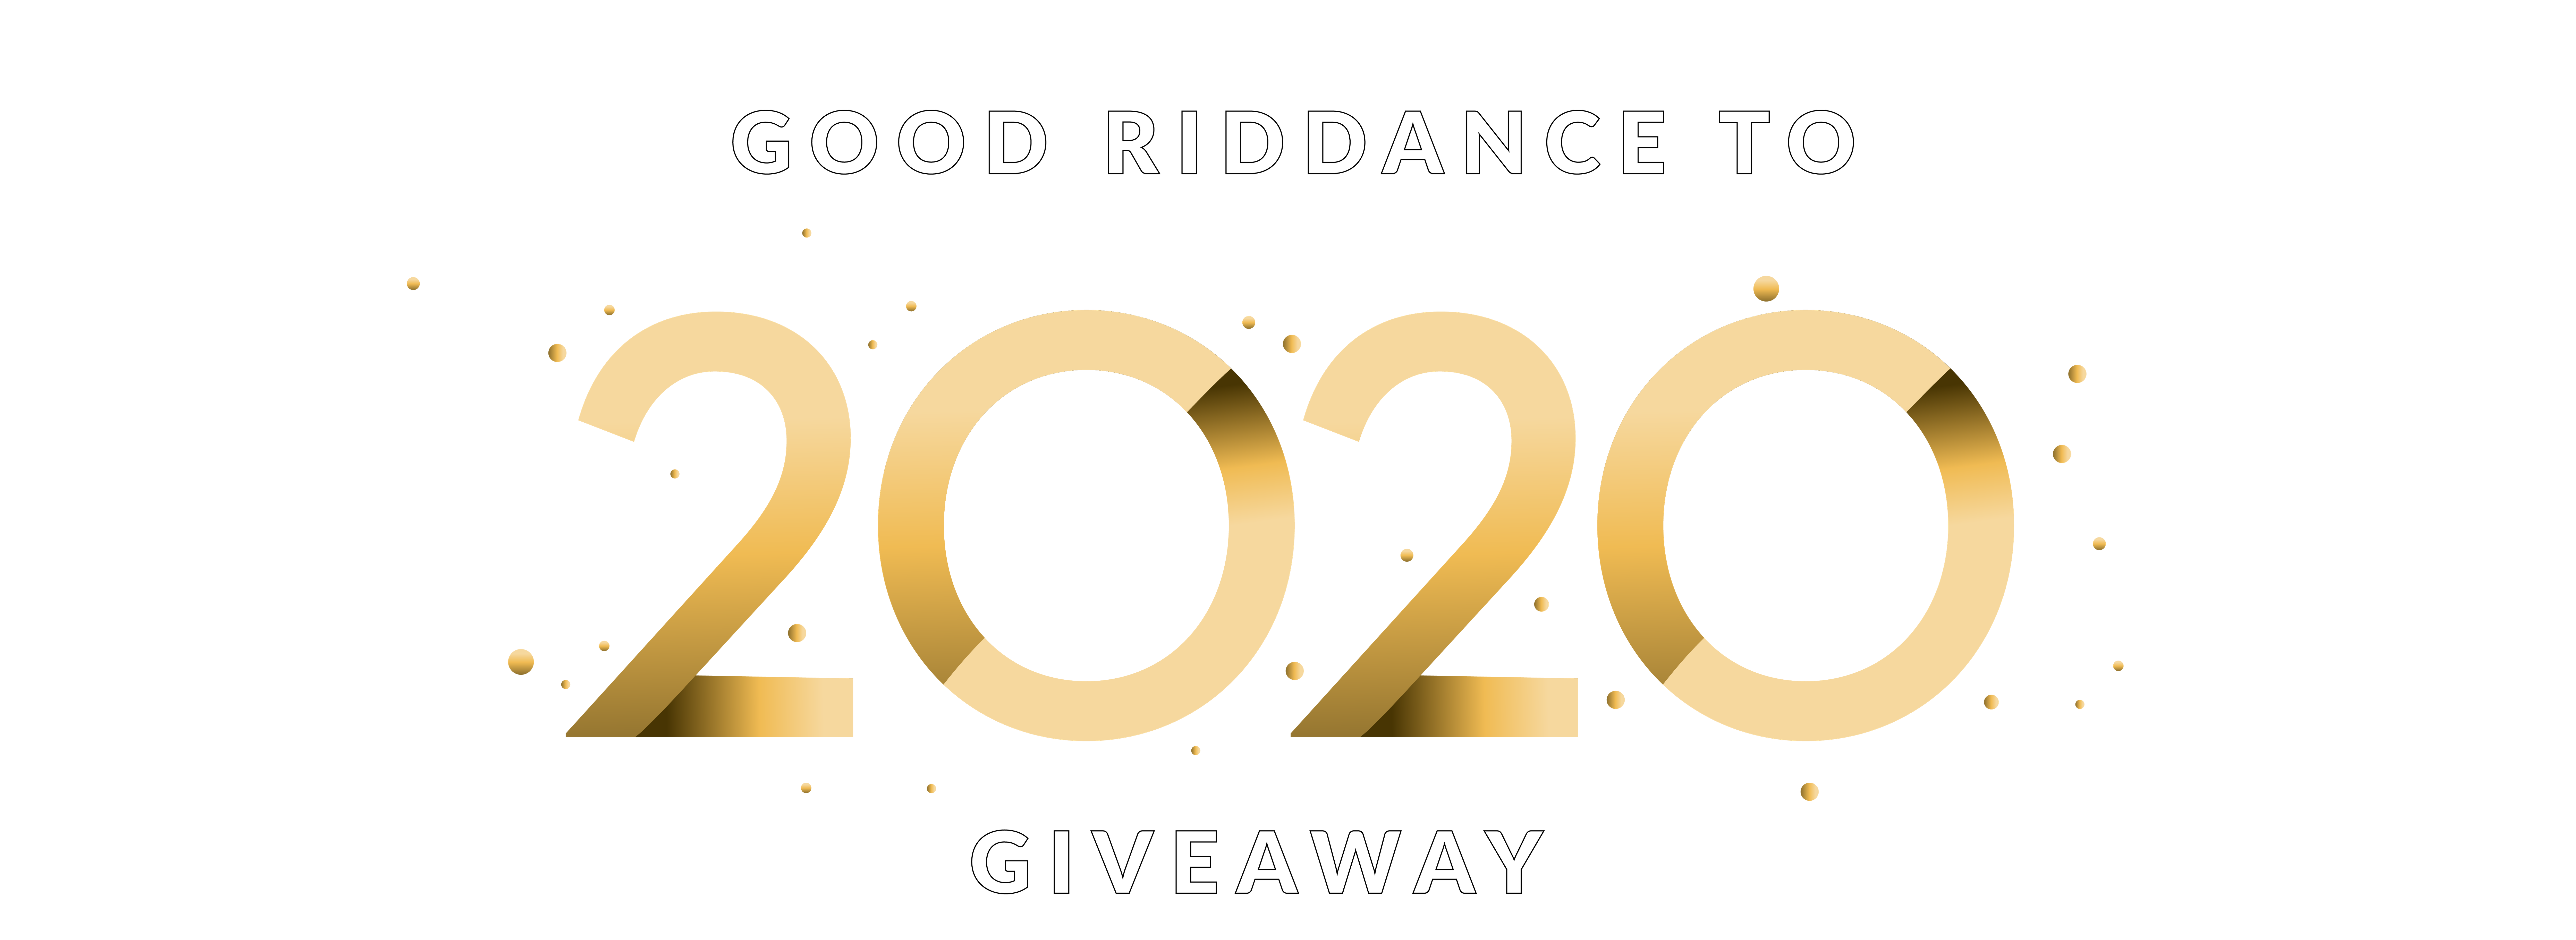 Good Riddance to 2020 New Years Giveaway